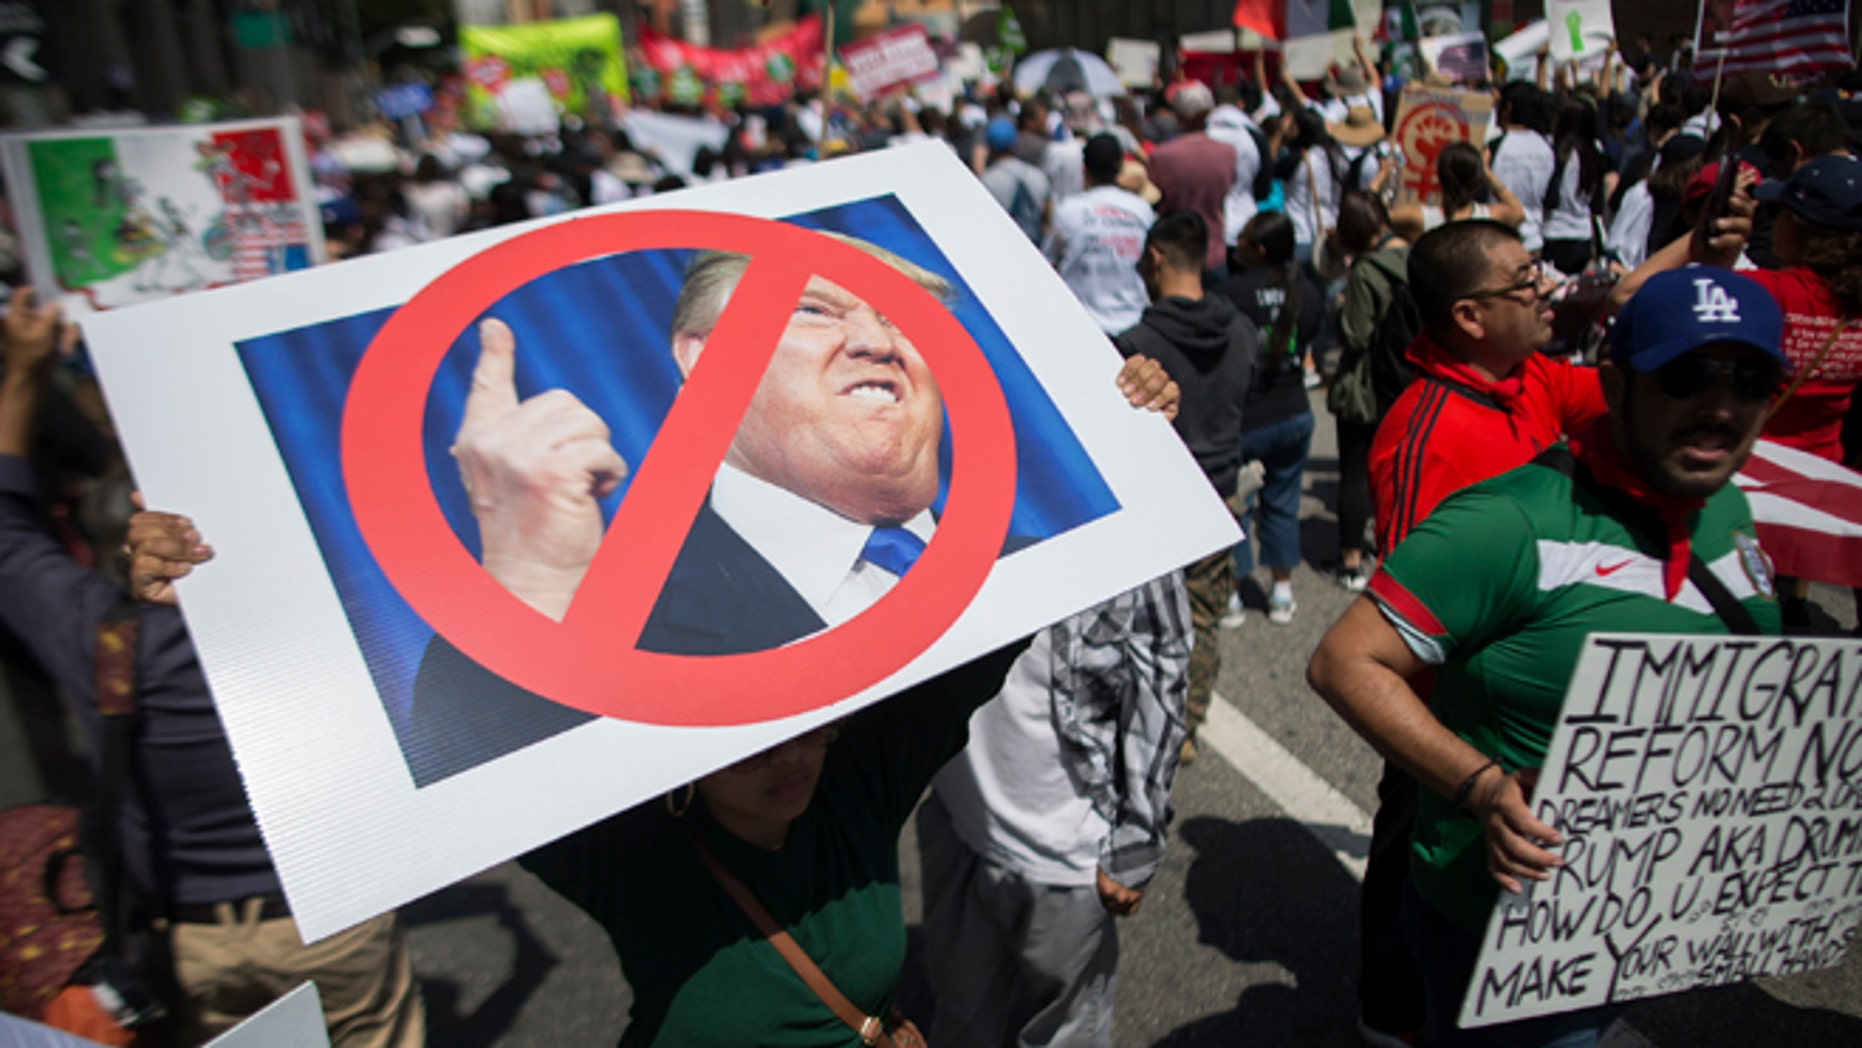 A woman carries a placard critical of Republican presidential candidate Donald Trump during one of several May Day marches on May 1, 2016 in Los Angeles, California.  (Photo by David McNew/Getty Images)